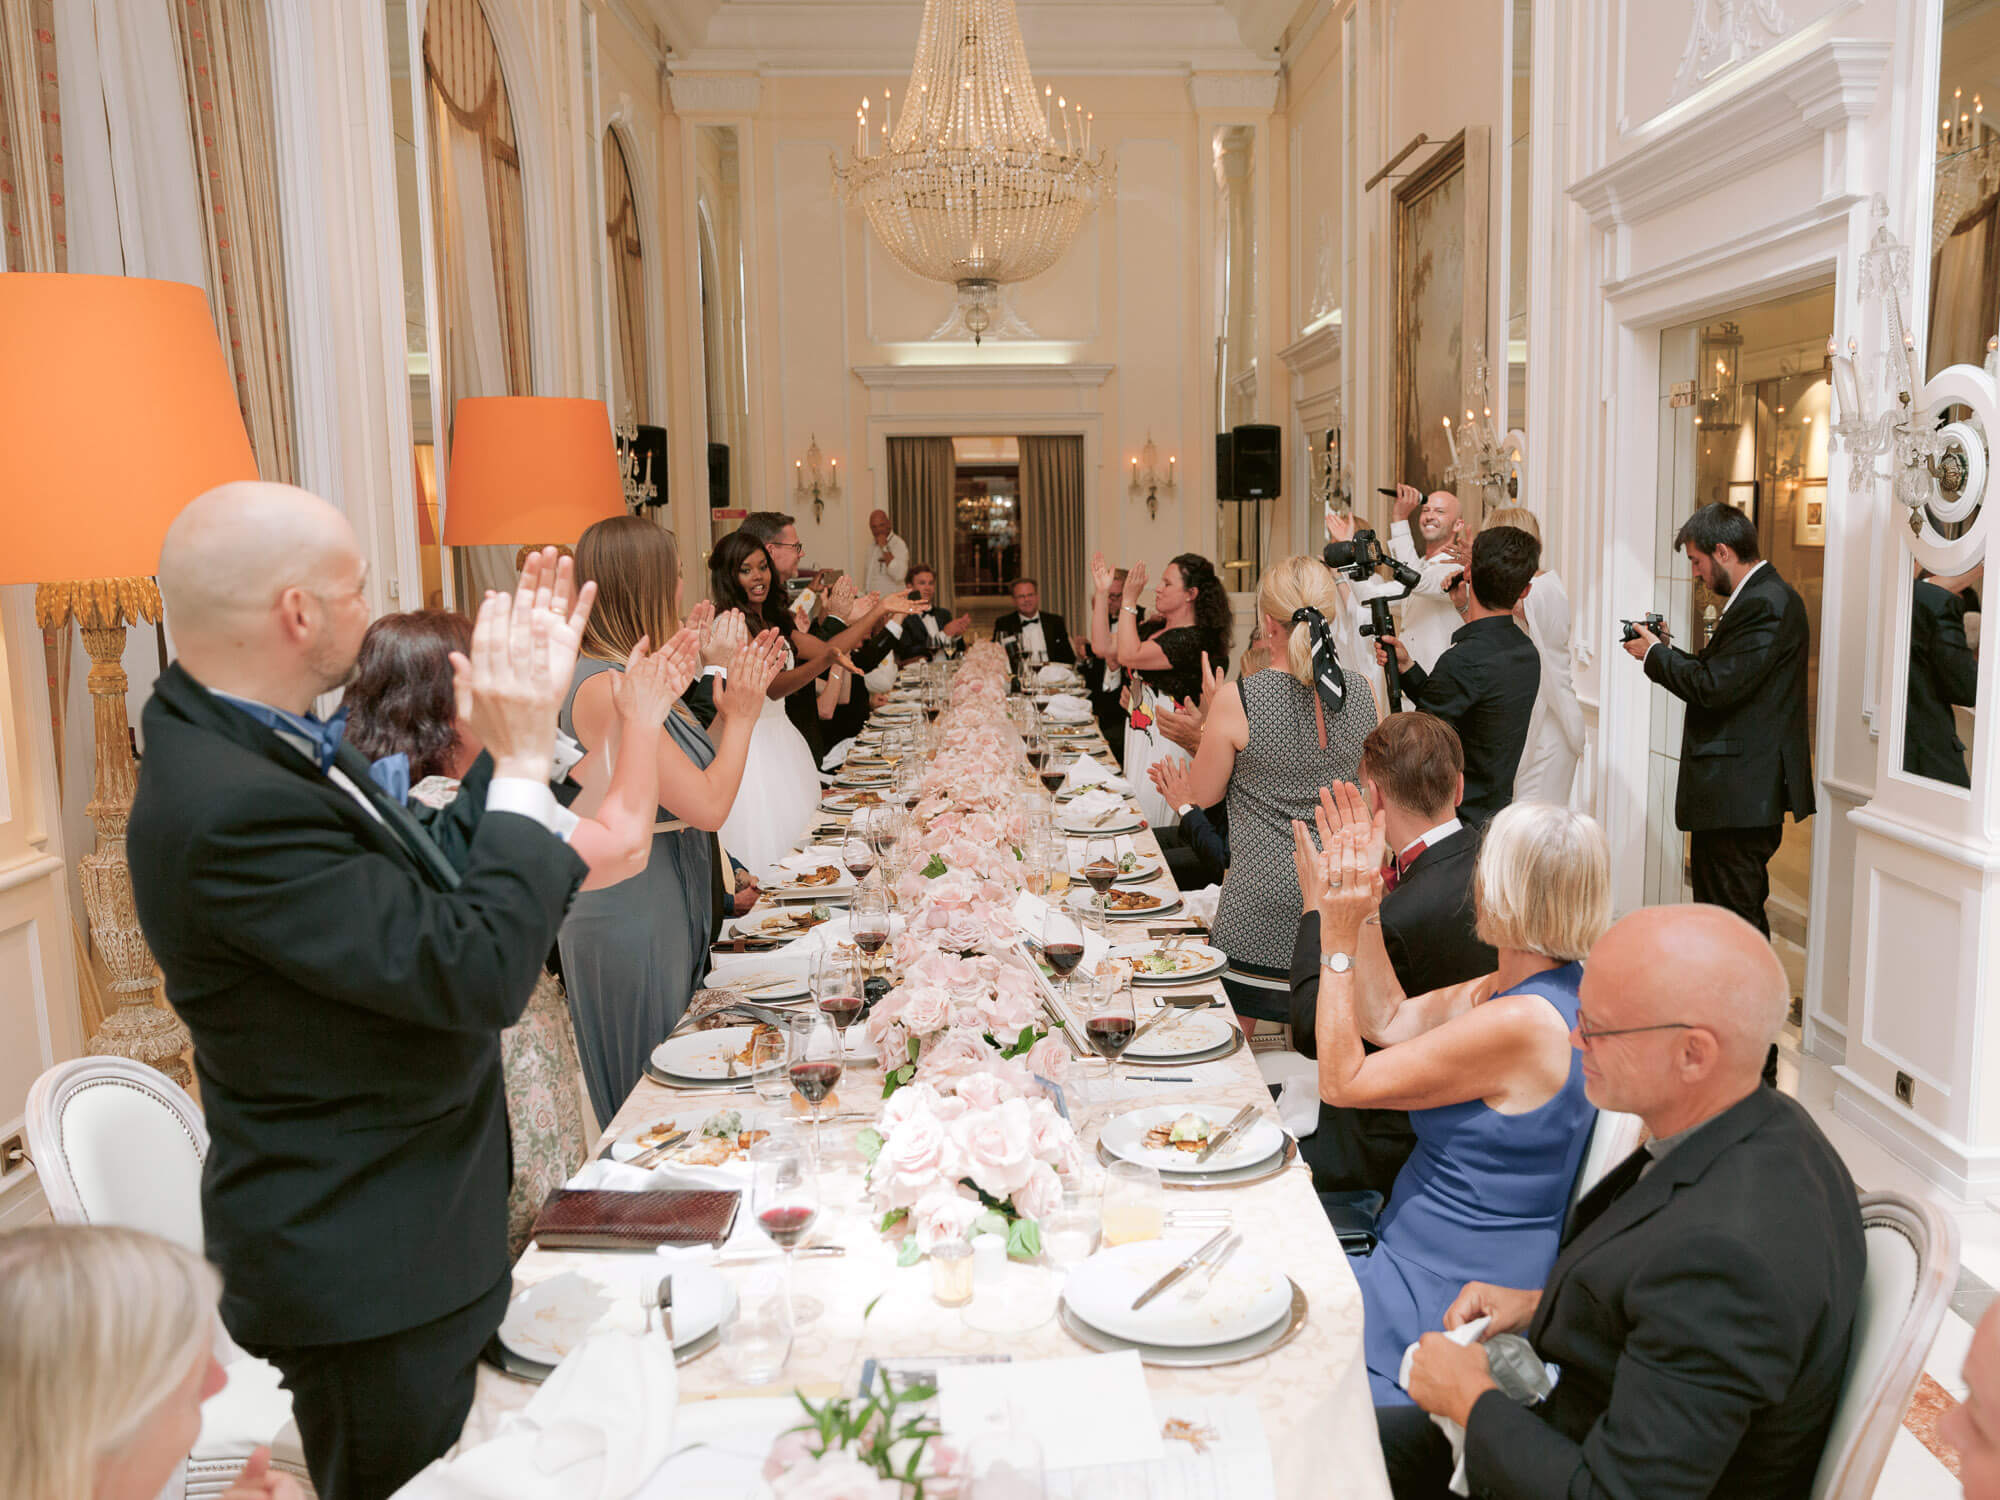 wedding guests clapping and cheering during wedding reception by Portugal Wedding Photographer